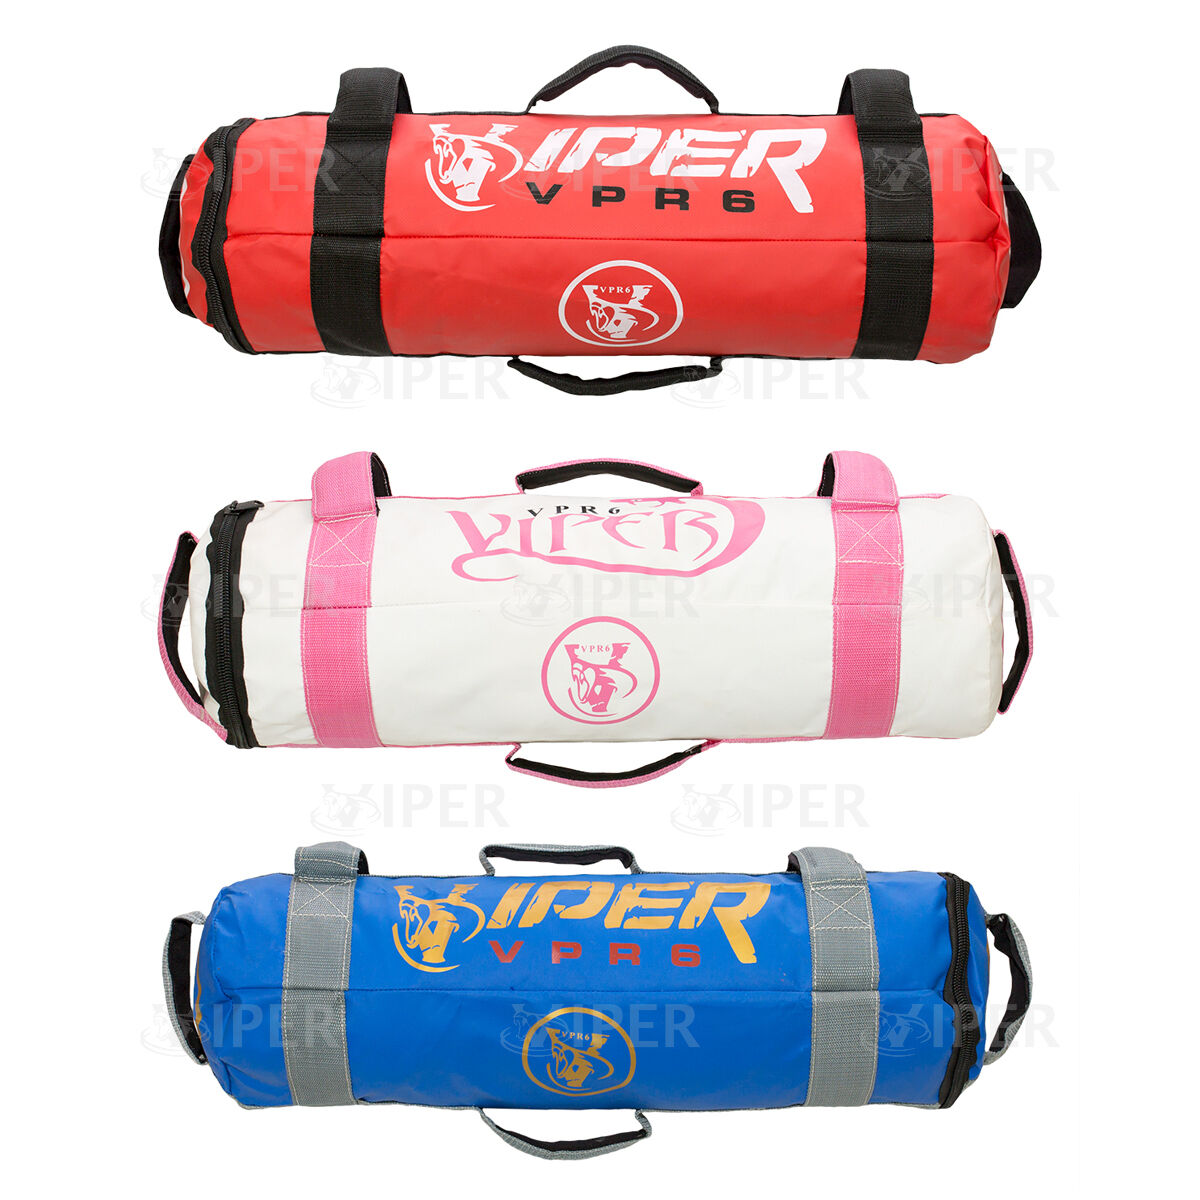 Power Cloth Sand Filled  Bag Crossfit Powerbag Training Sandbag 0-25kg any colour  cheapest price